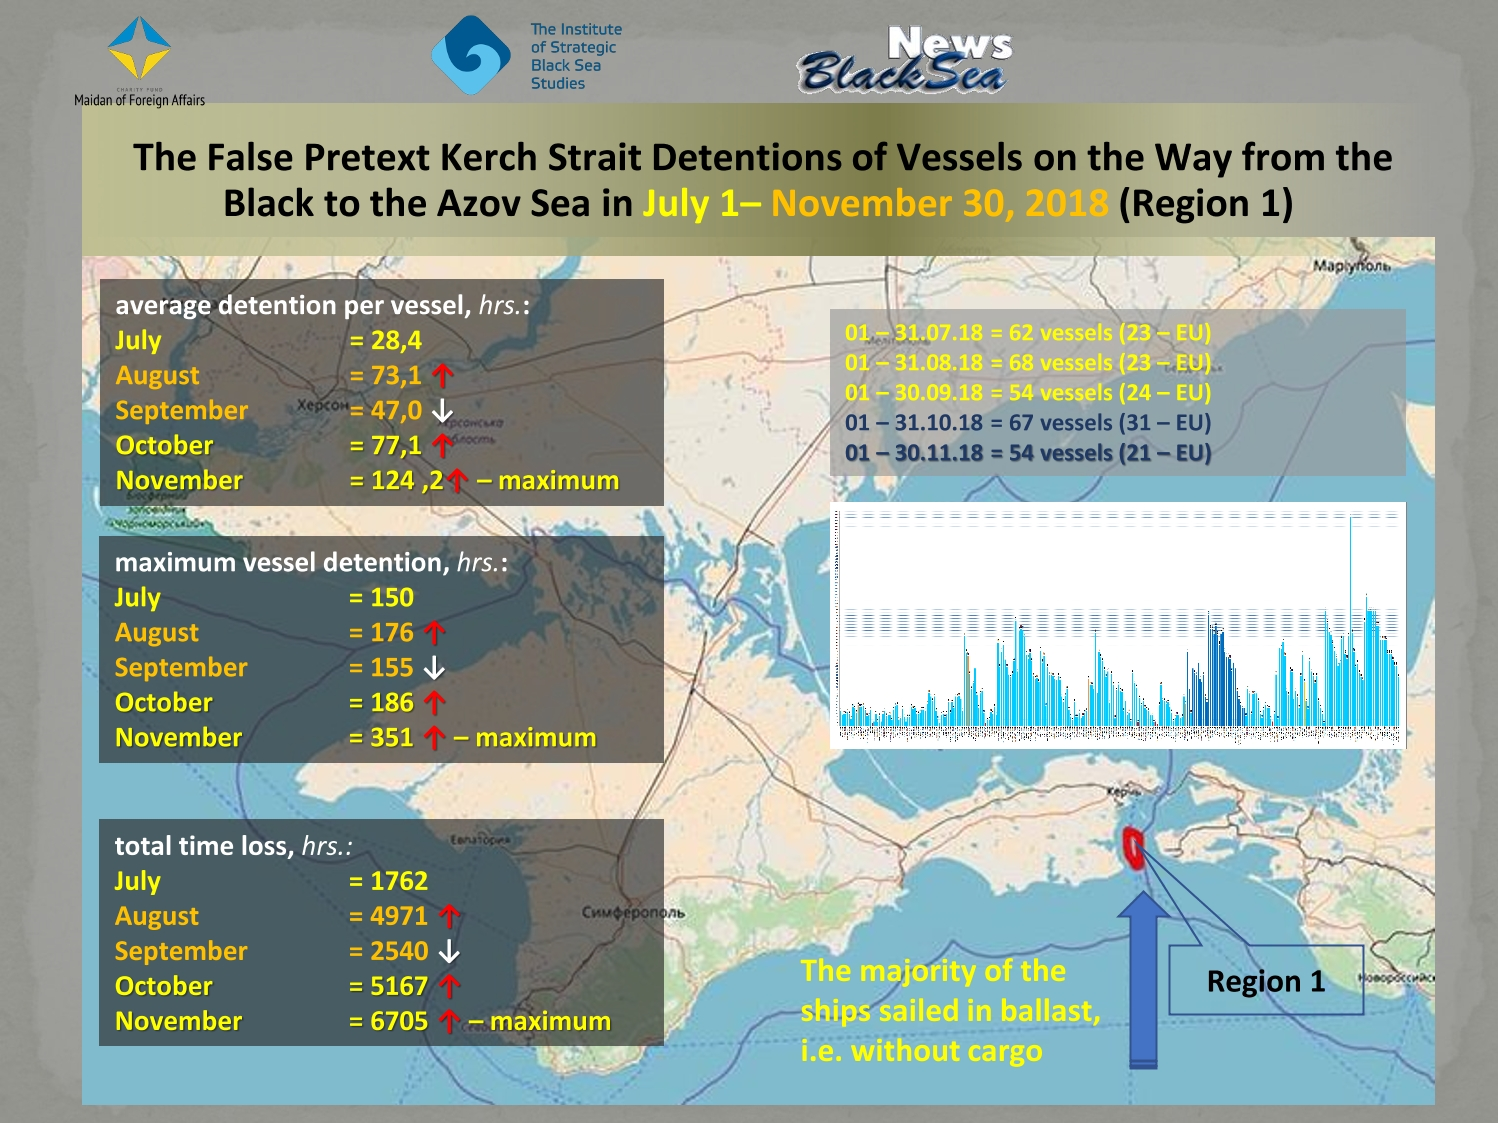 Russian aggression in the Azov Sea has been ongoing since